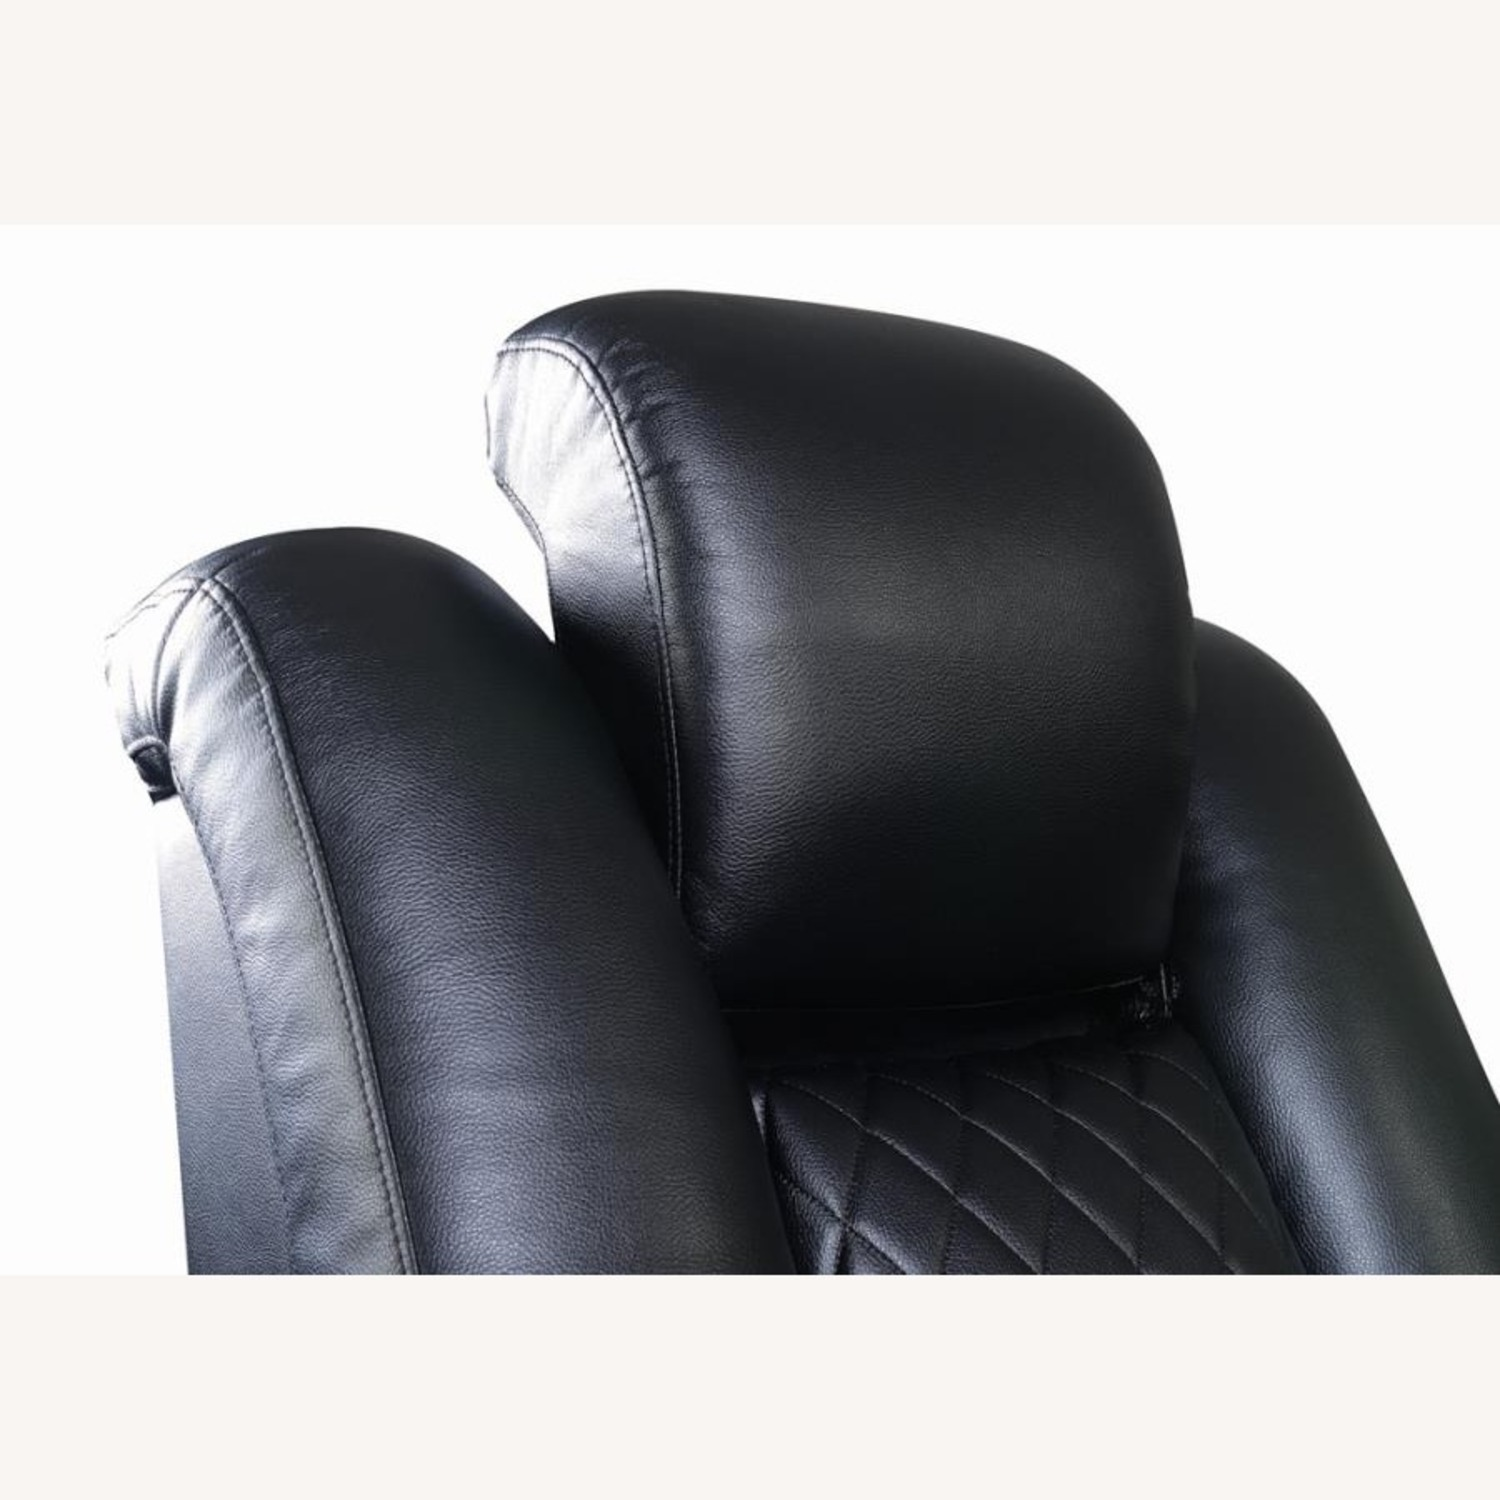 Power Loveseat In Black Performance Leather - image-7